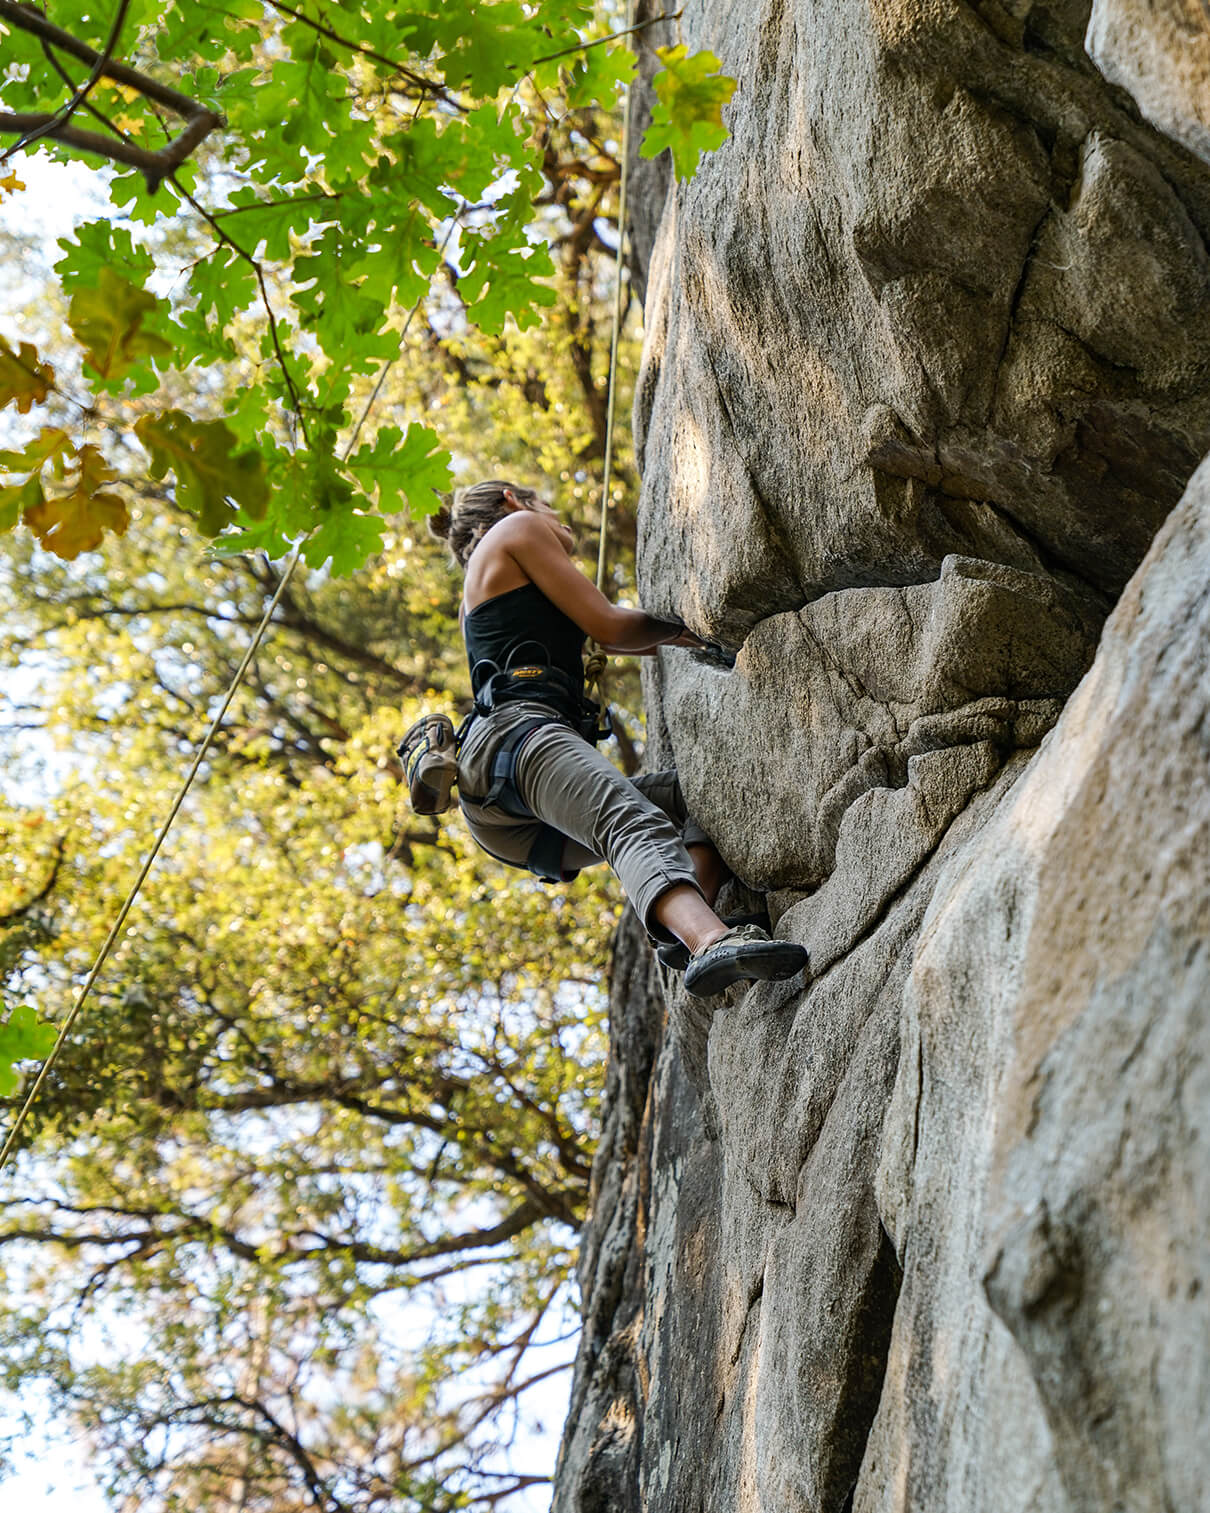 Women outside rock climbing under tree. If you're looking to enhance your peak performance southlake, then you've come to the right place. EMDR for peak performance in Southlake, TX can help you achieve your work, school, and performance goals. Begin EMDR therapy in Texas with us!